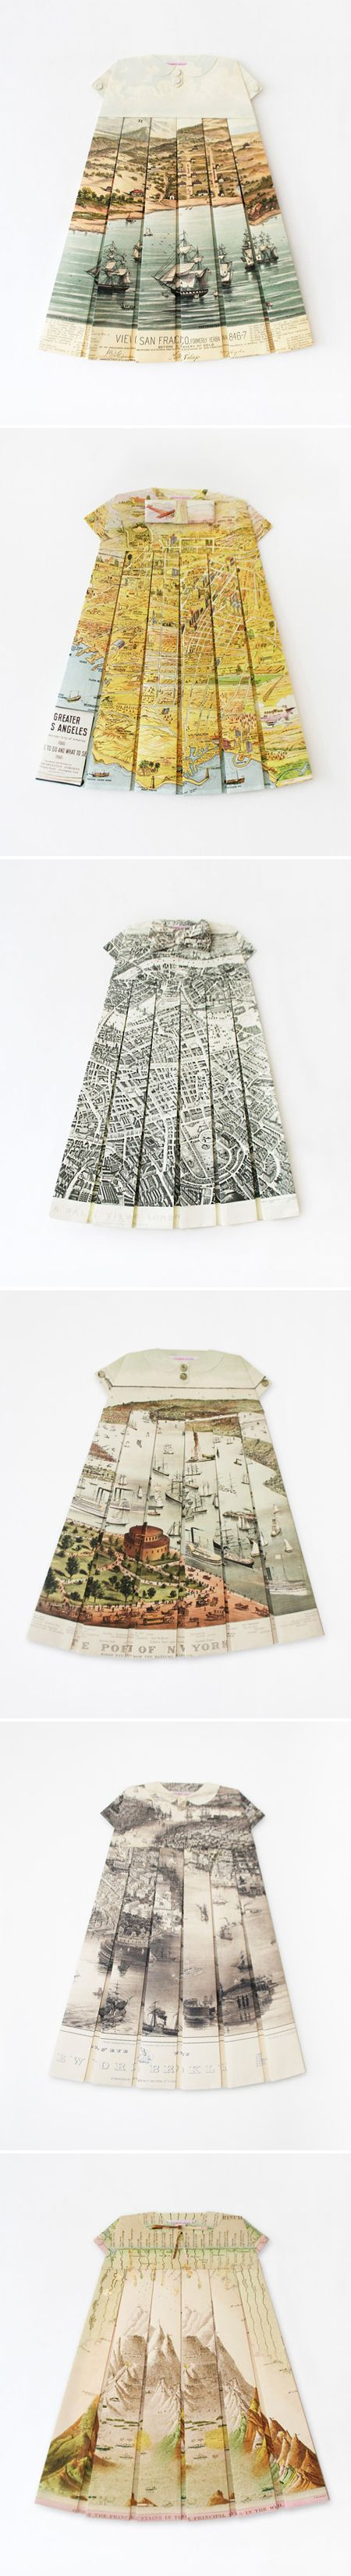 ELISABETH LECOURT - vintage maps folded into tiny dresses